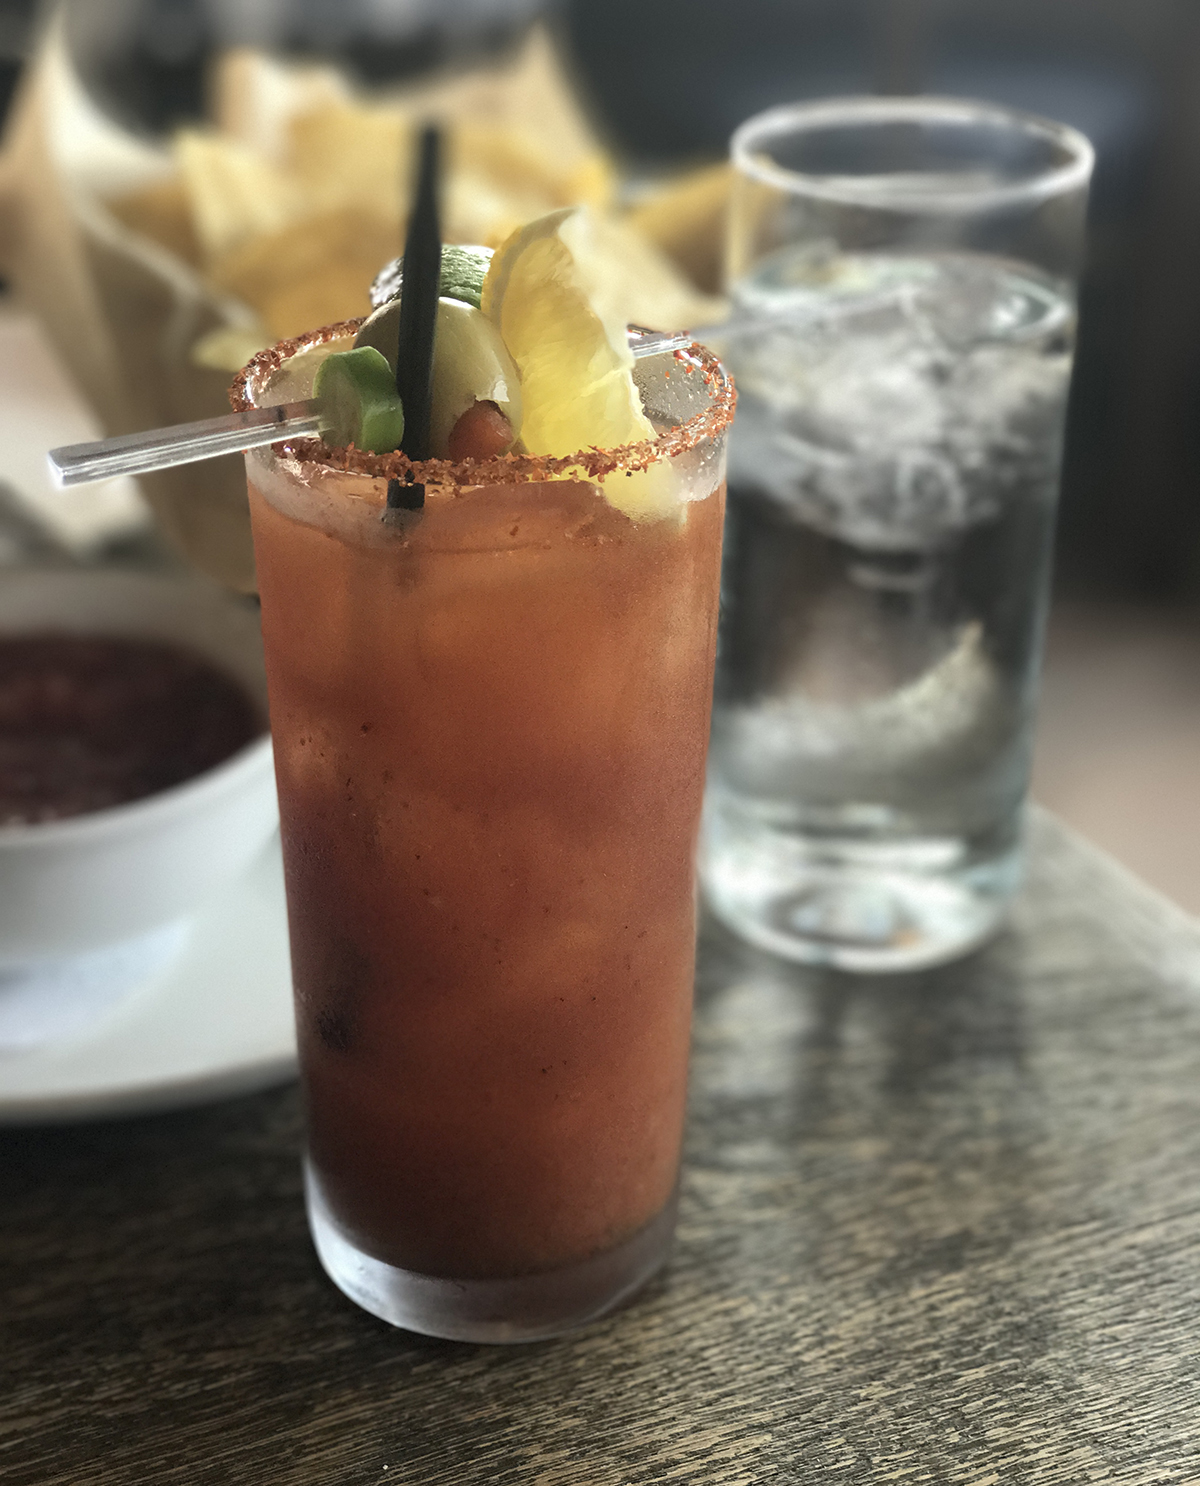 Brunch at Red O in Santa Monica - Bloody Mary